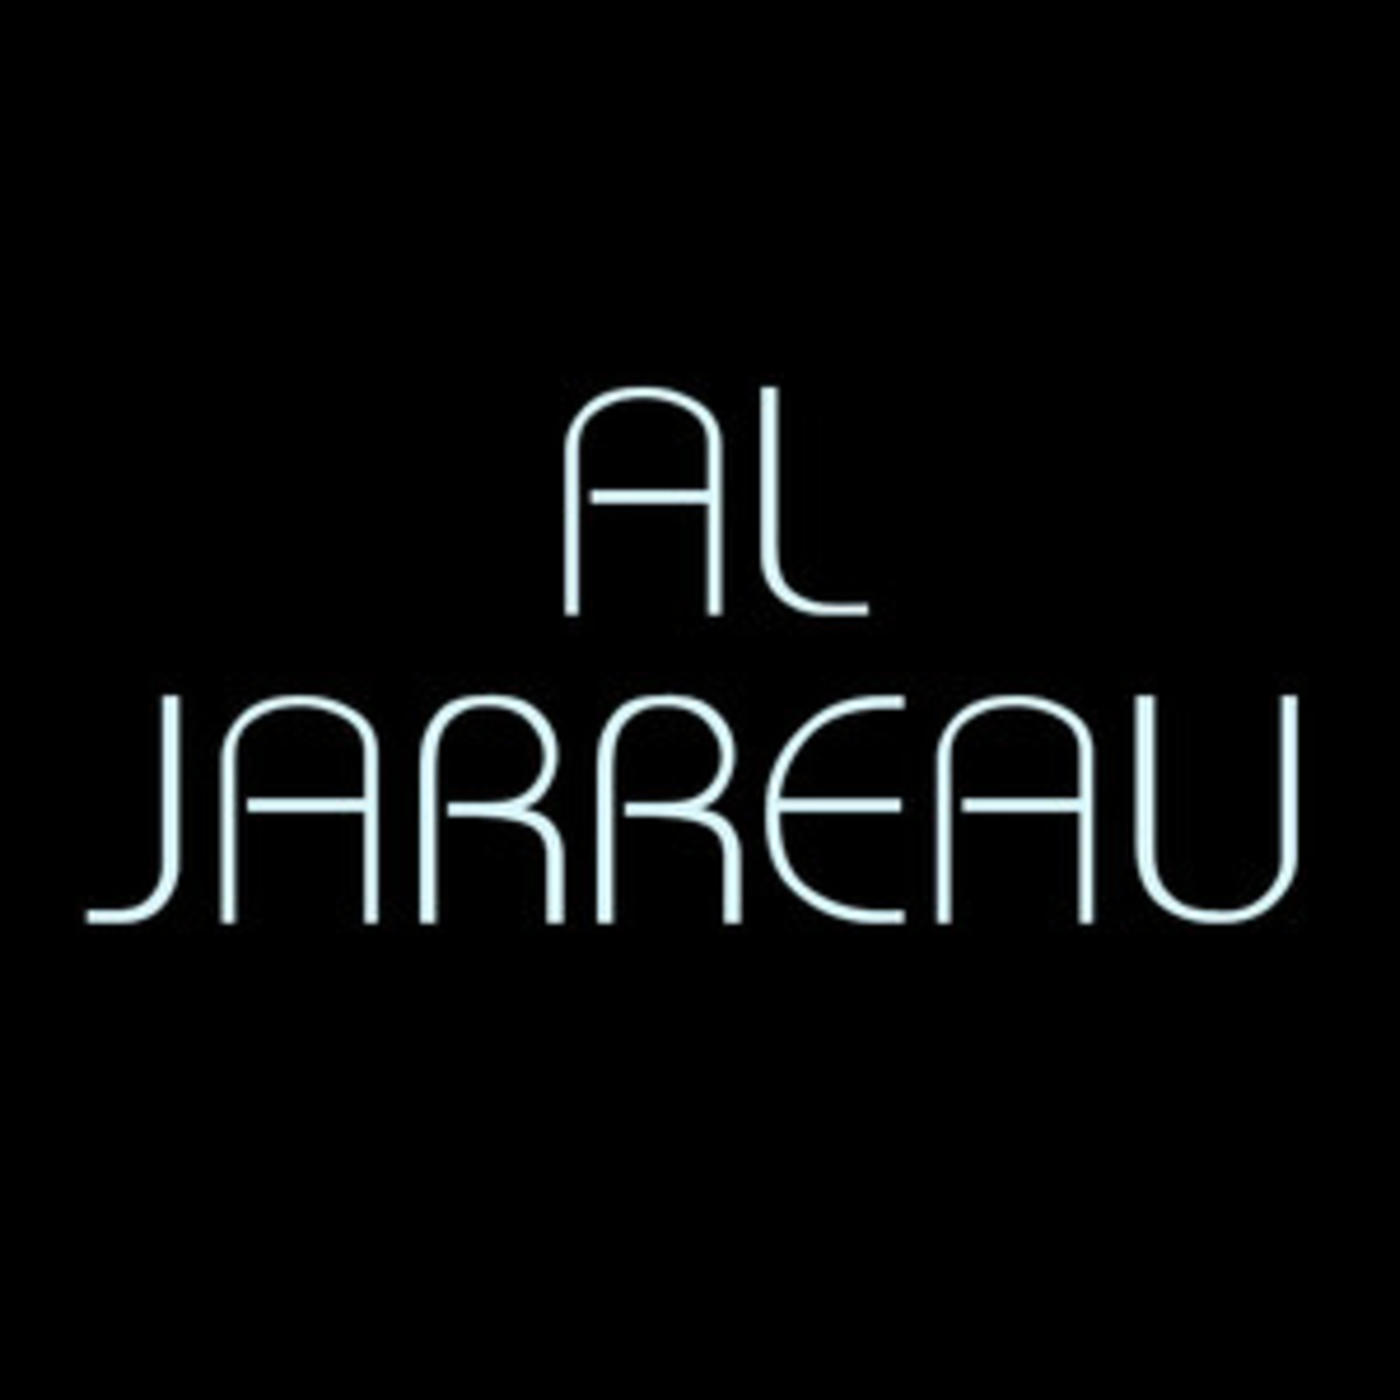 Al Jarreau - Official Playlist - Mornin', We're In This Love Together, After All, Roof Garden